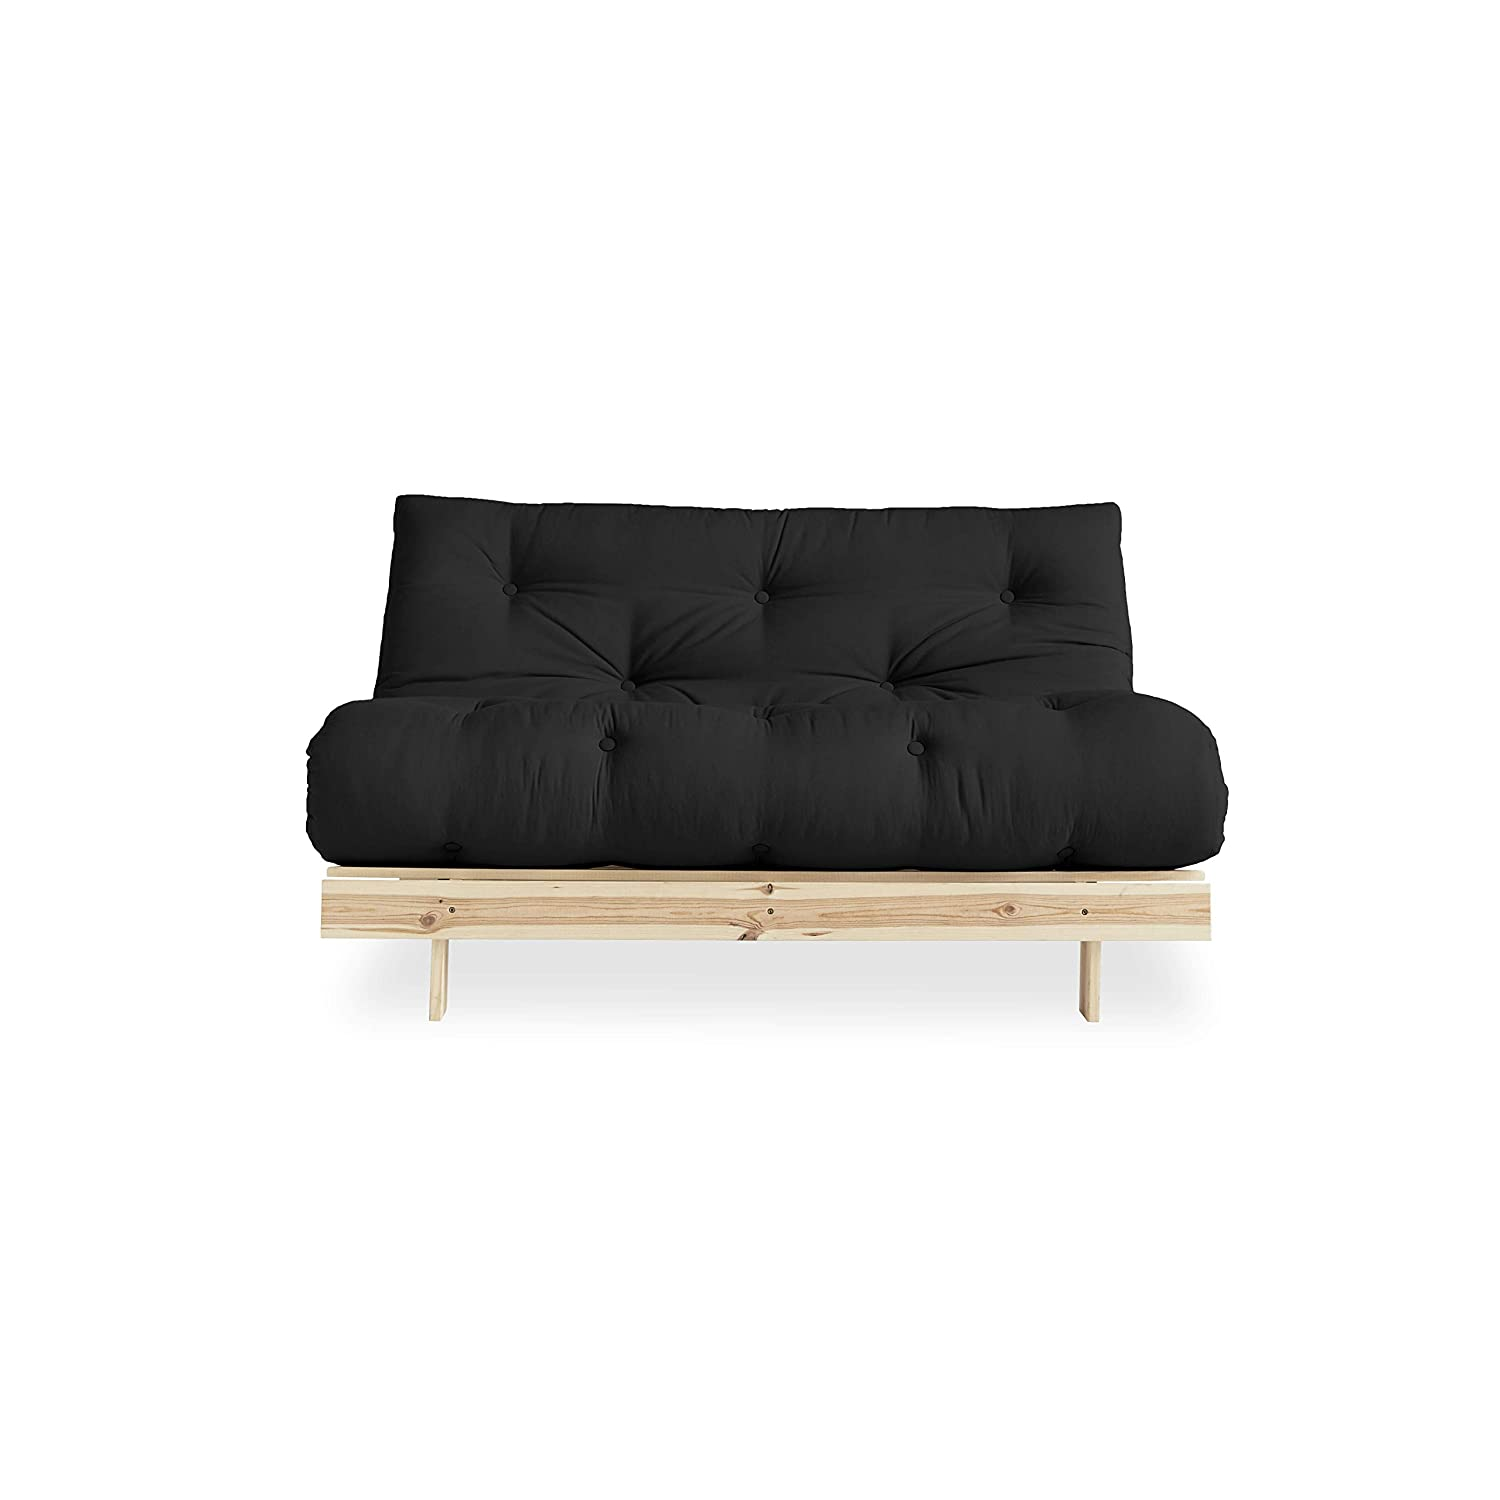 2 Places Futon Canap/é-lit Style scandinave en Bois Naturel 140 x 200 Nordique 20 x 140 x 200 cm Pin certifi/é FSC Mix Structure Karup Design Roots